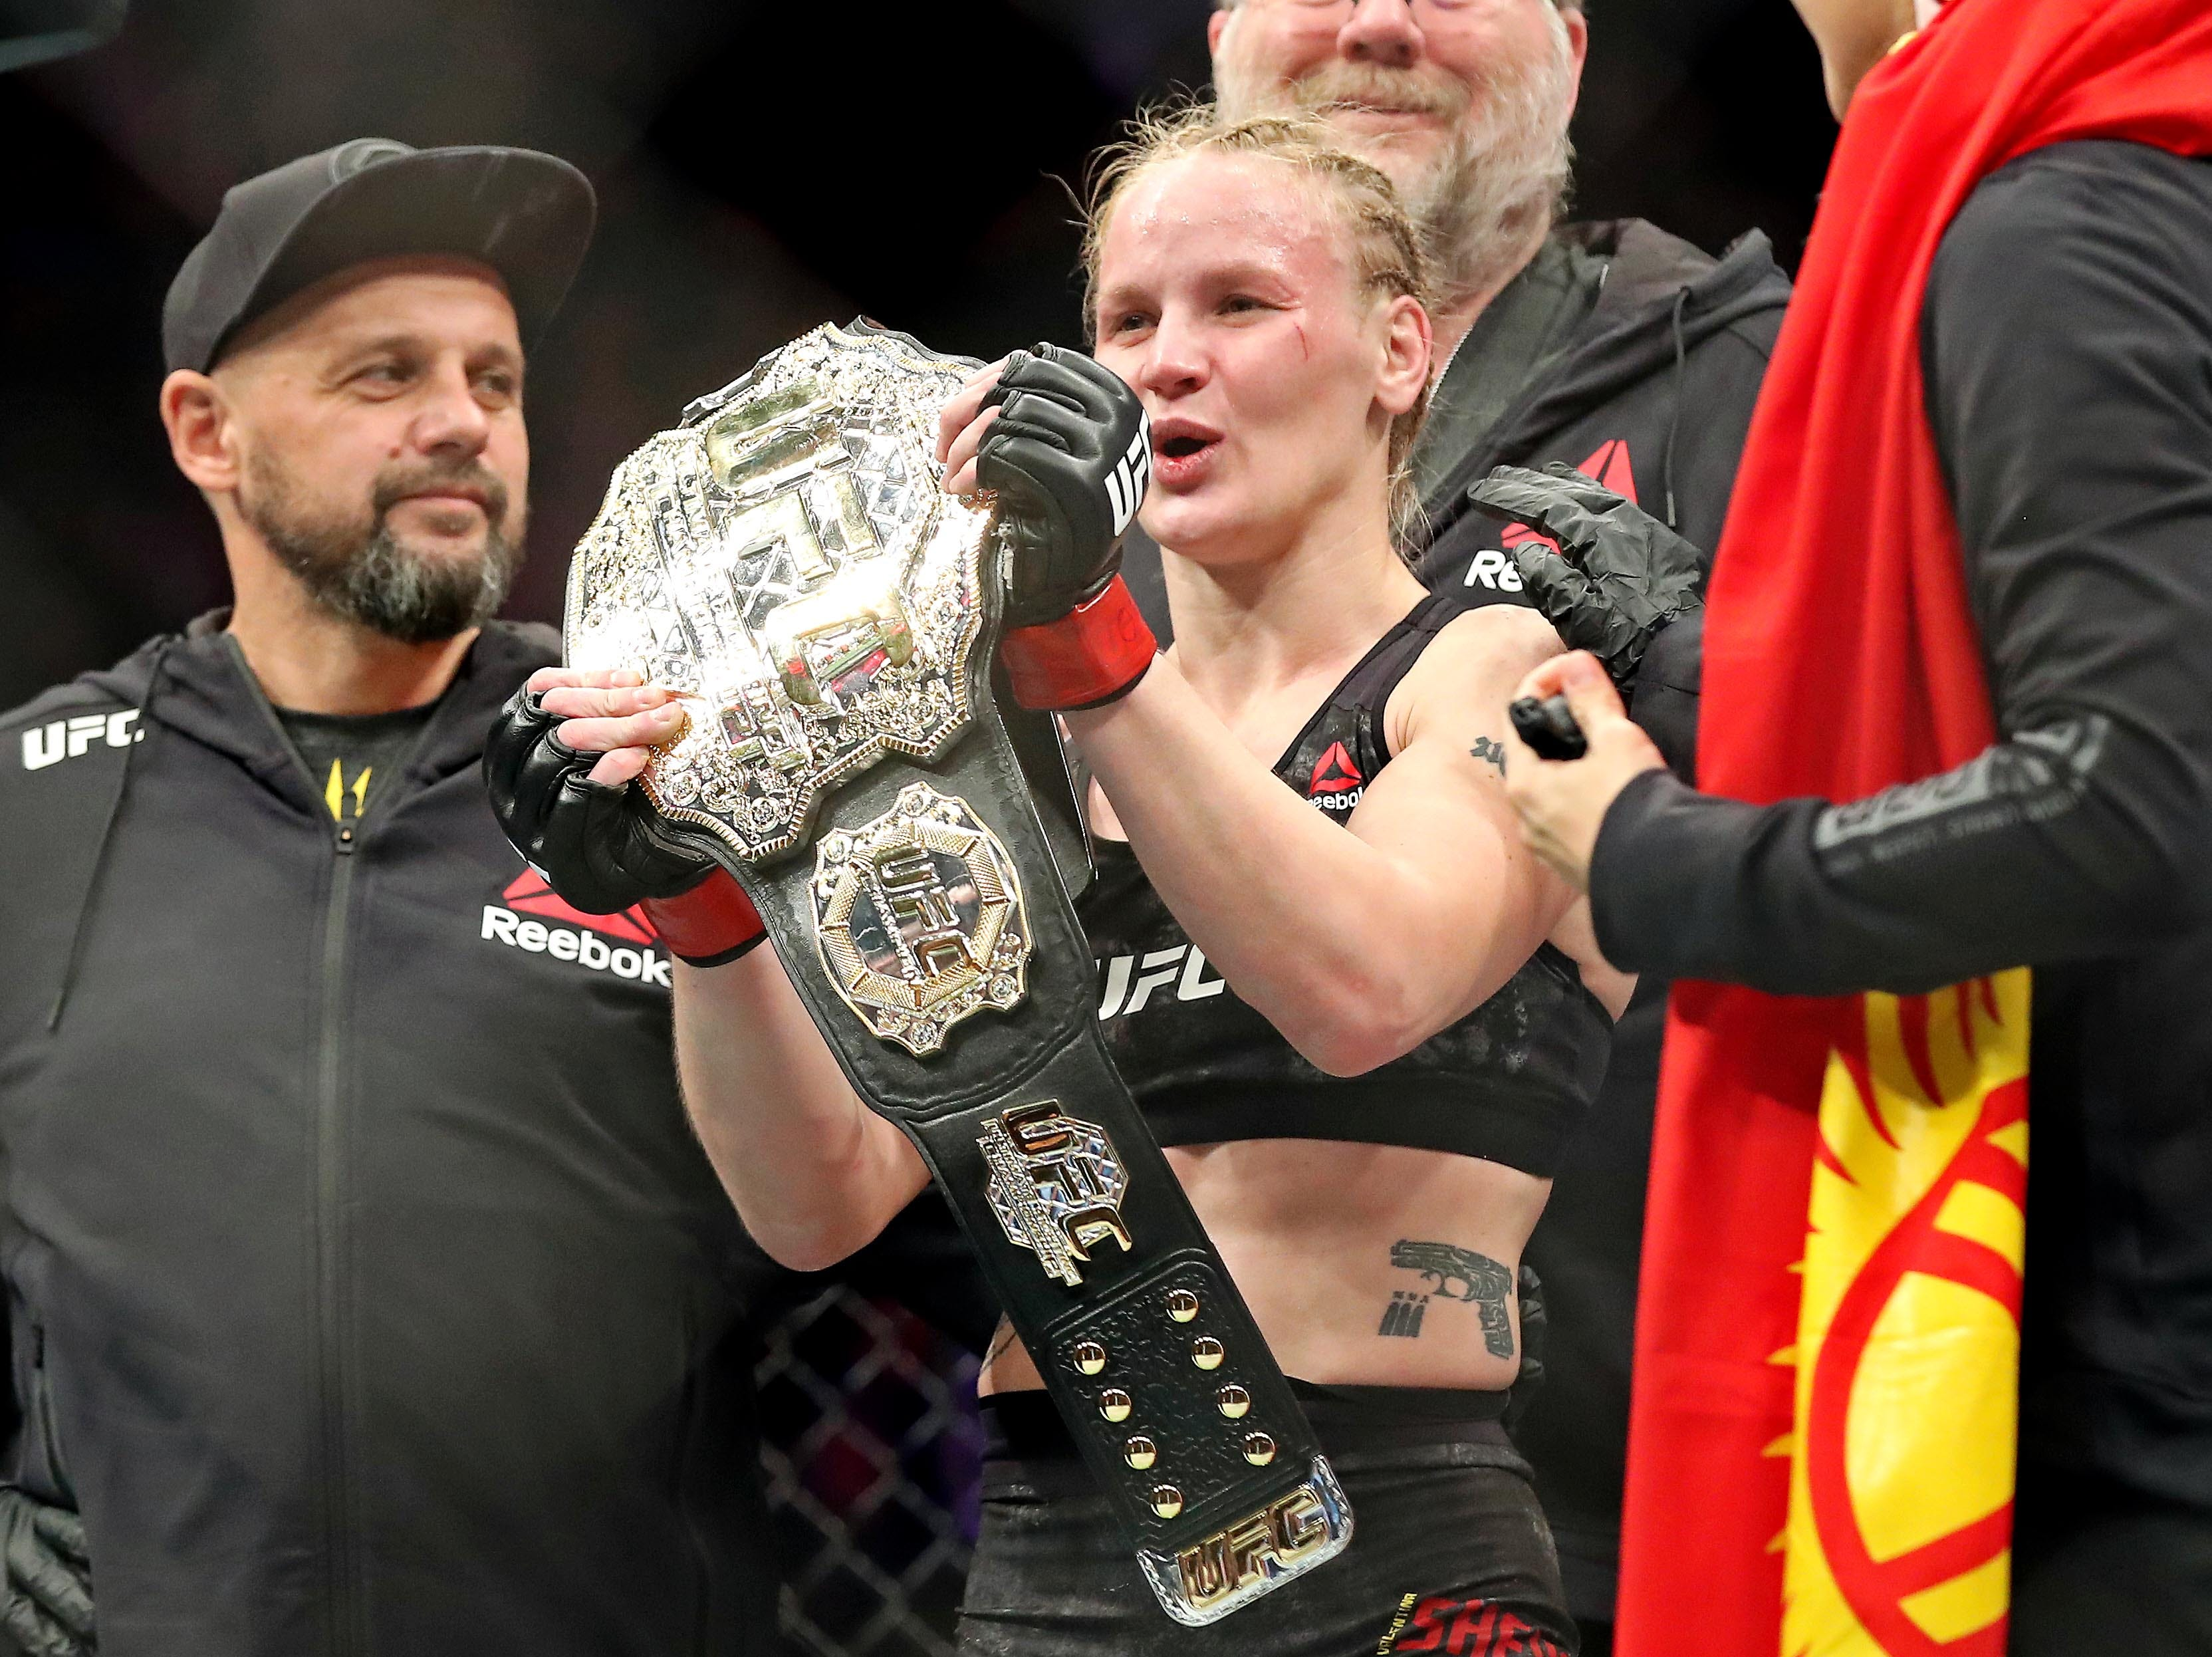 Valentina Shevchenko (red gloves) celebrates after beating Joanna Jedrzejczyk (blue gloves) during UFC 231 at Scotiabank Arena.